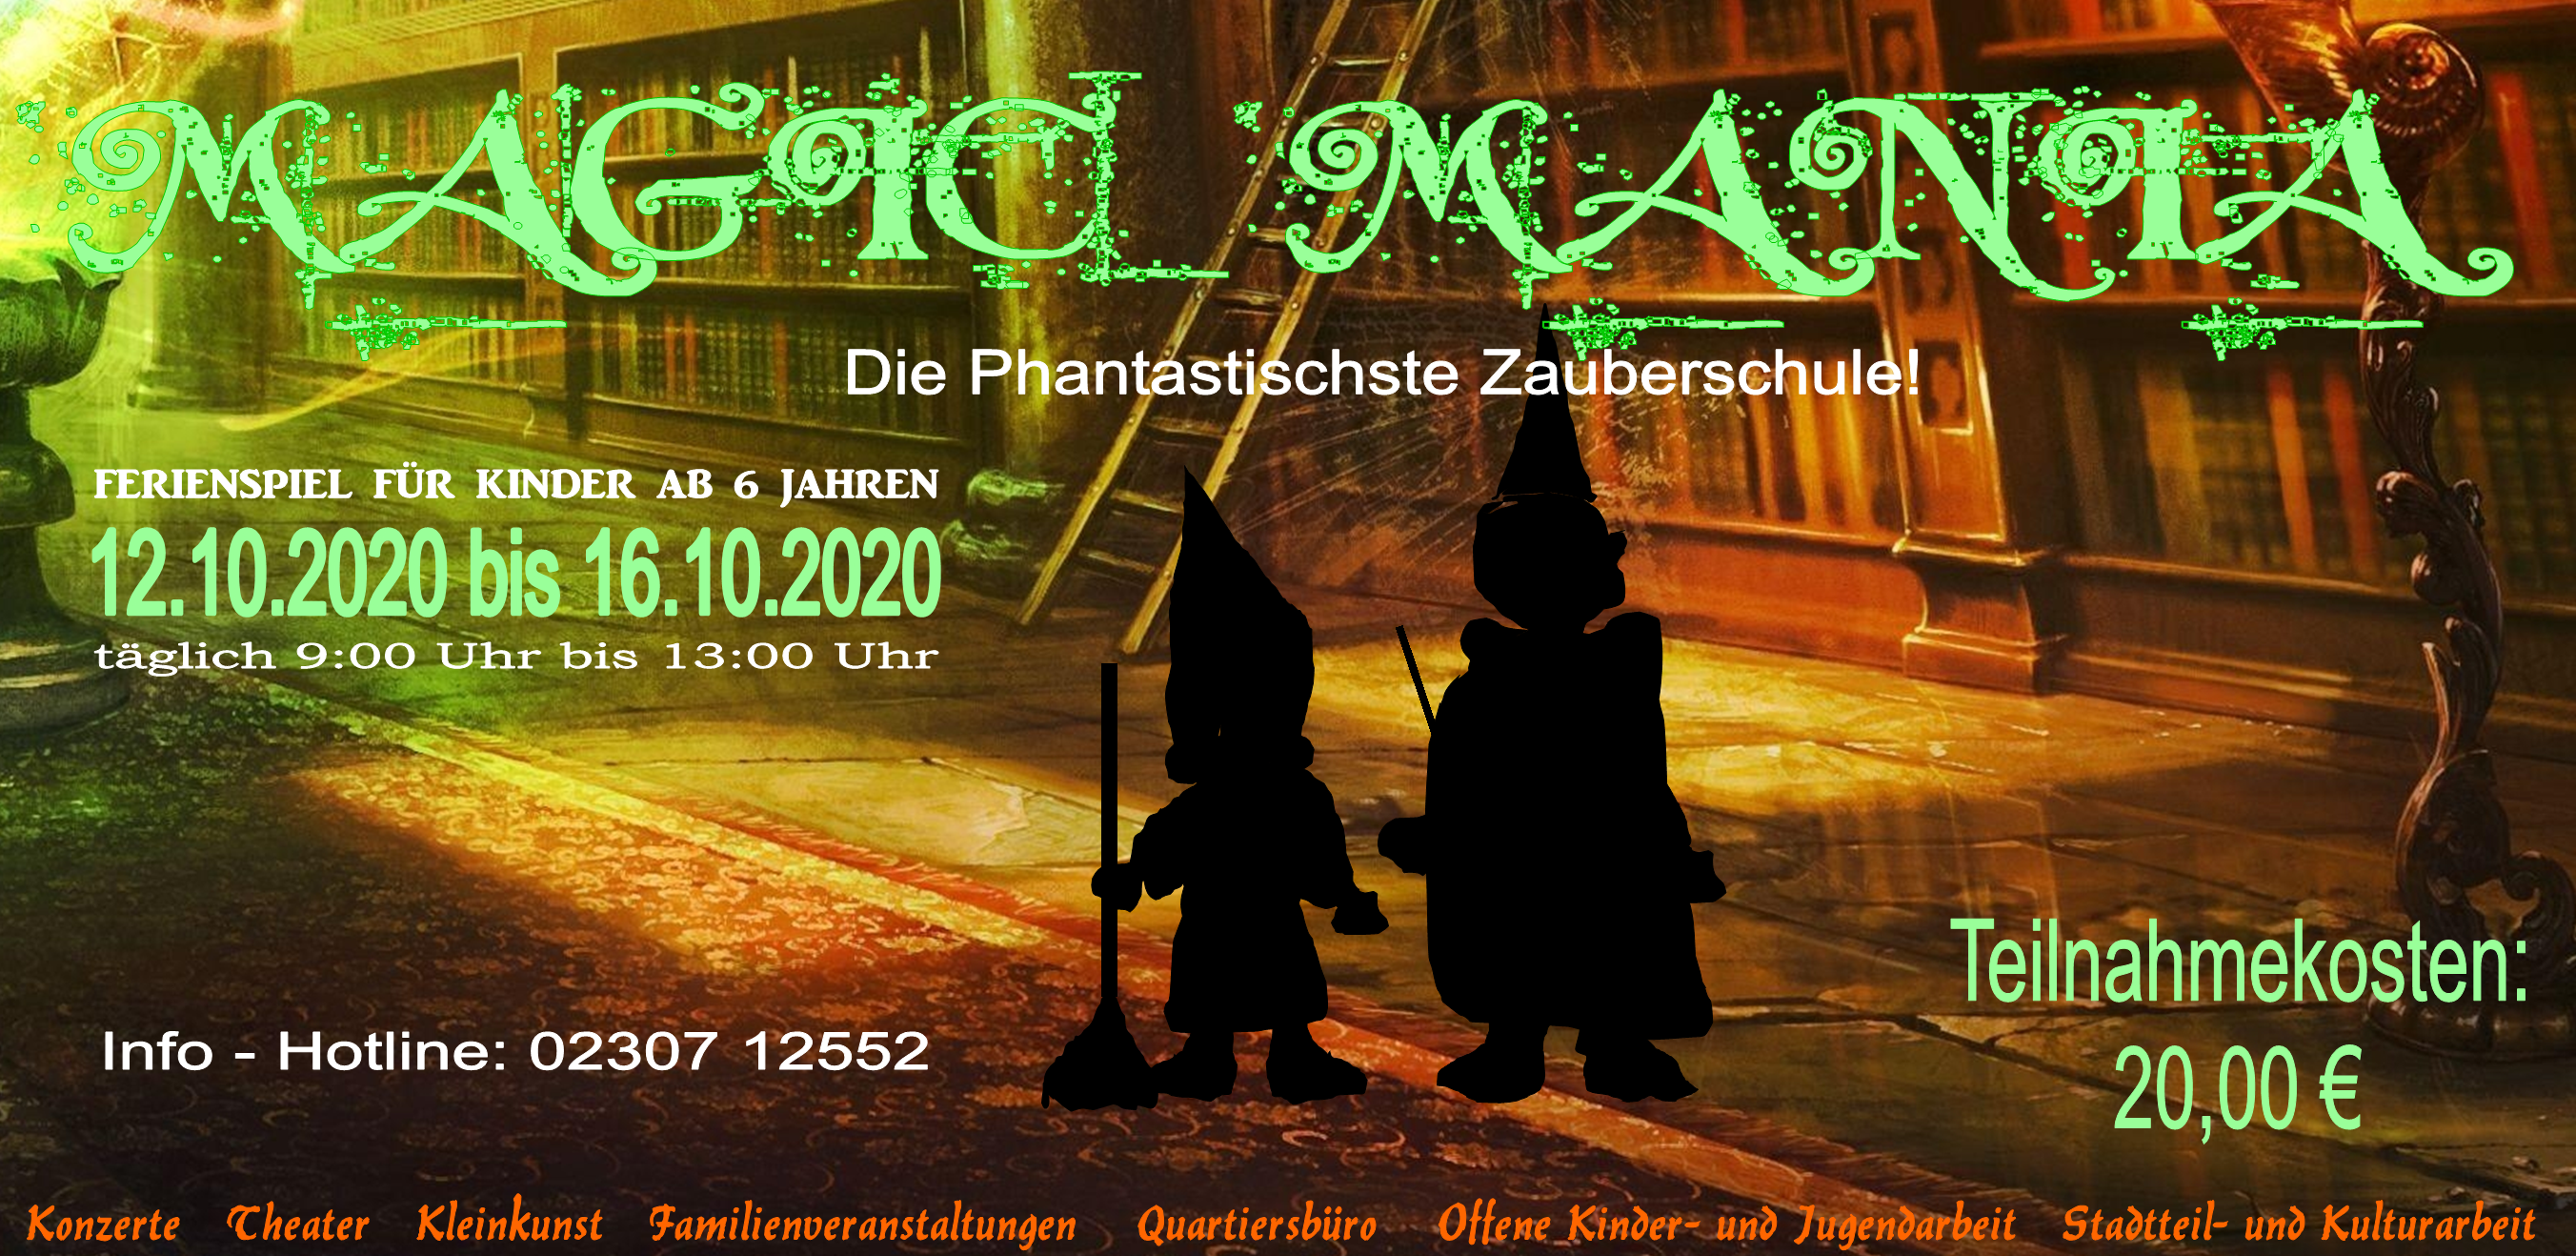 Header FZ Magic Mania 2020 aktualisiert cut